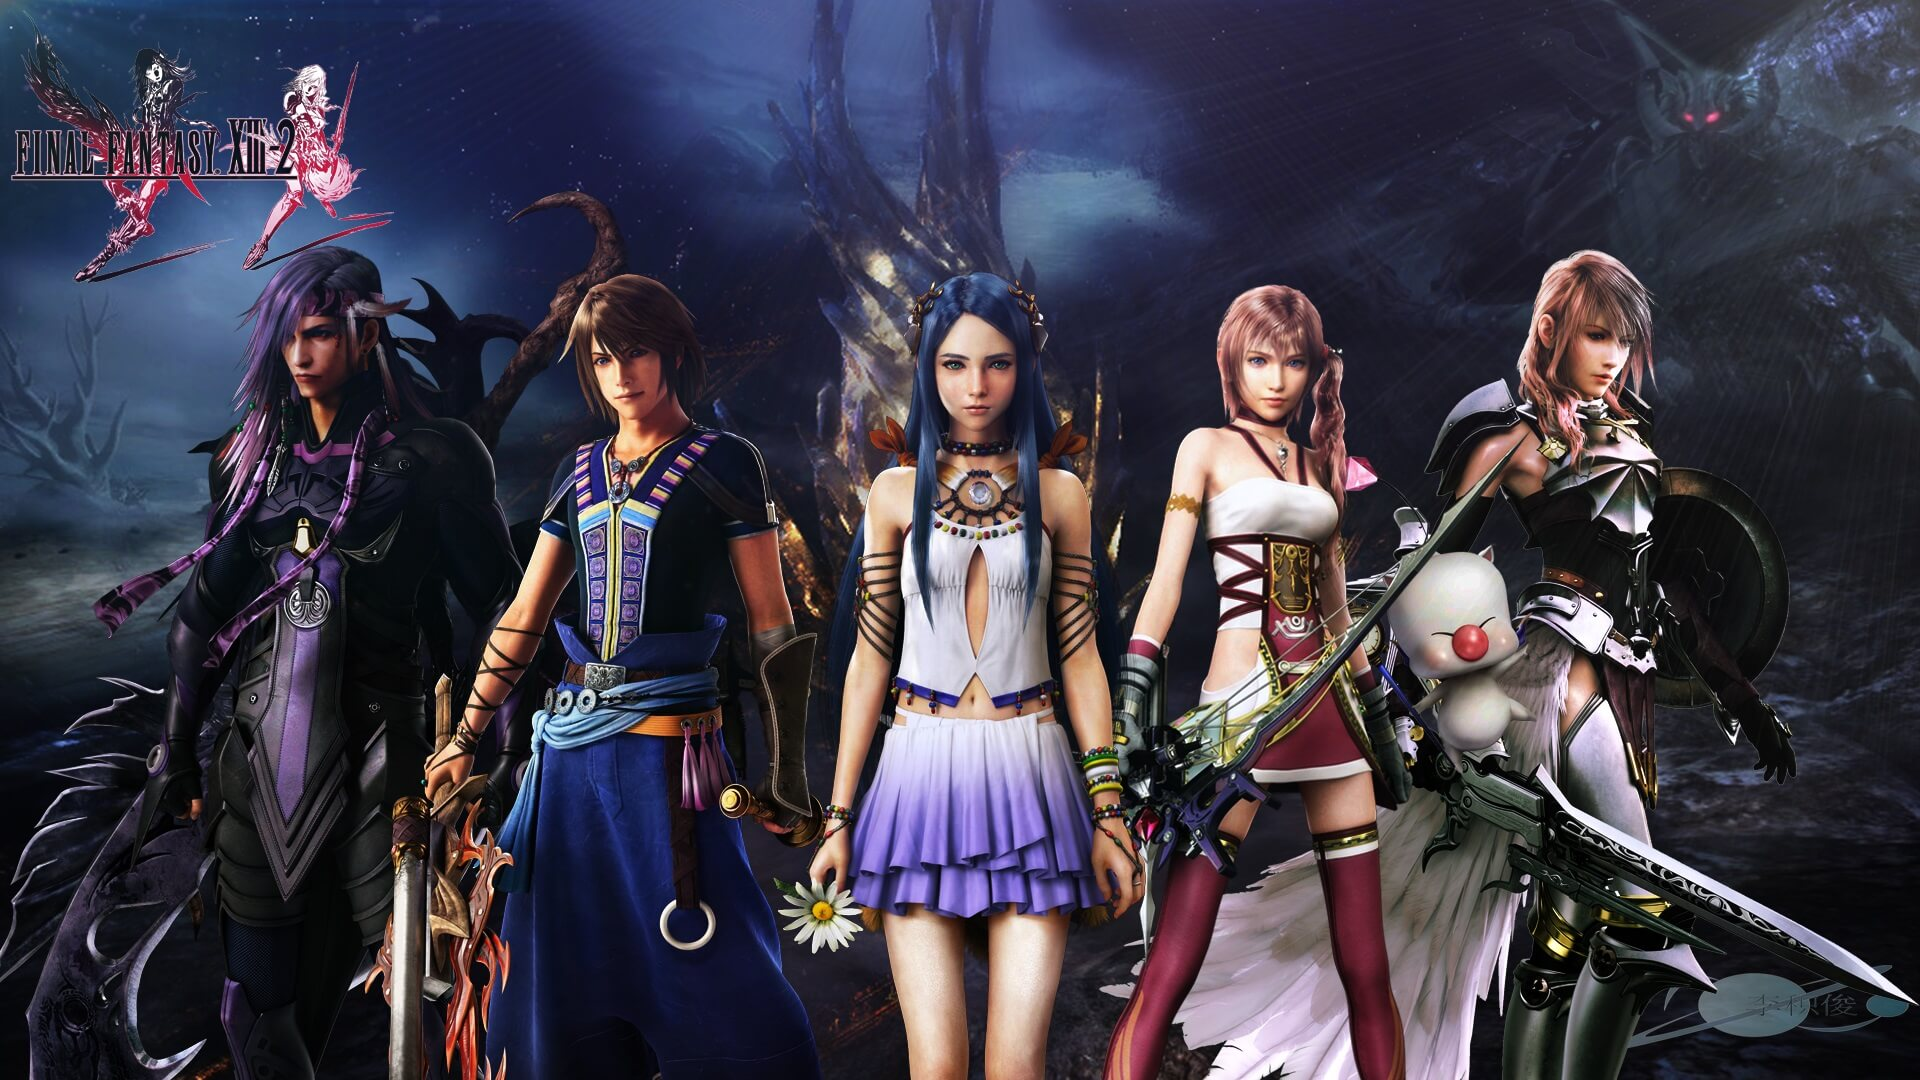 Final Fantasy Xiii 2 Walkthrough Episode 3 Oerba 200 Af Vgfaq